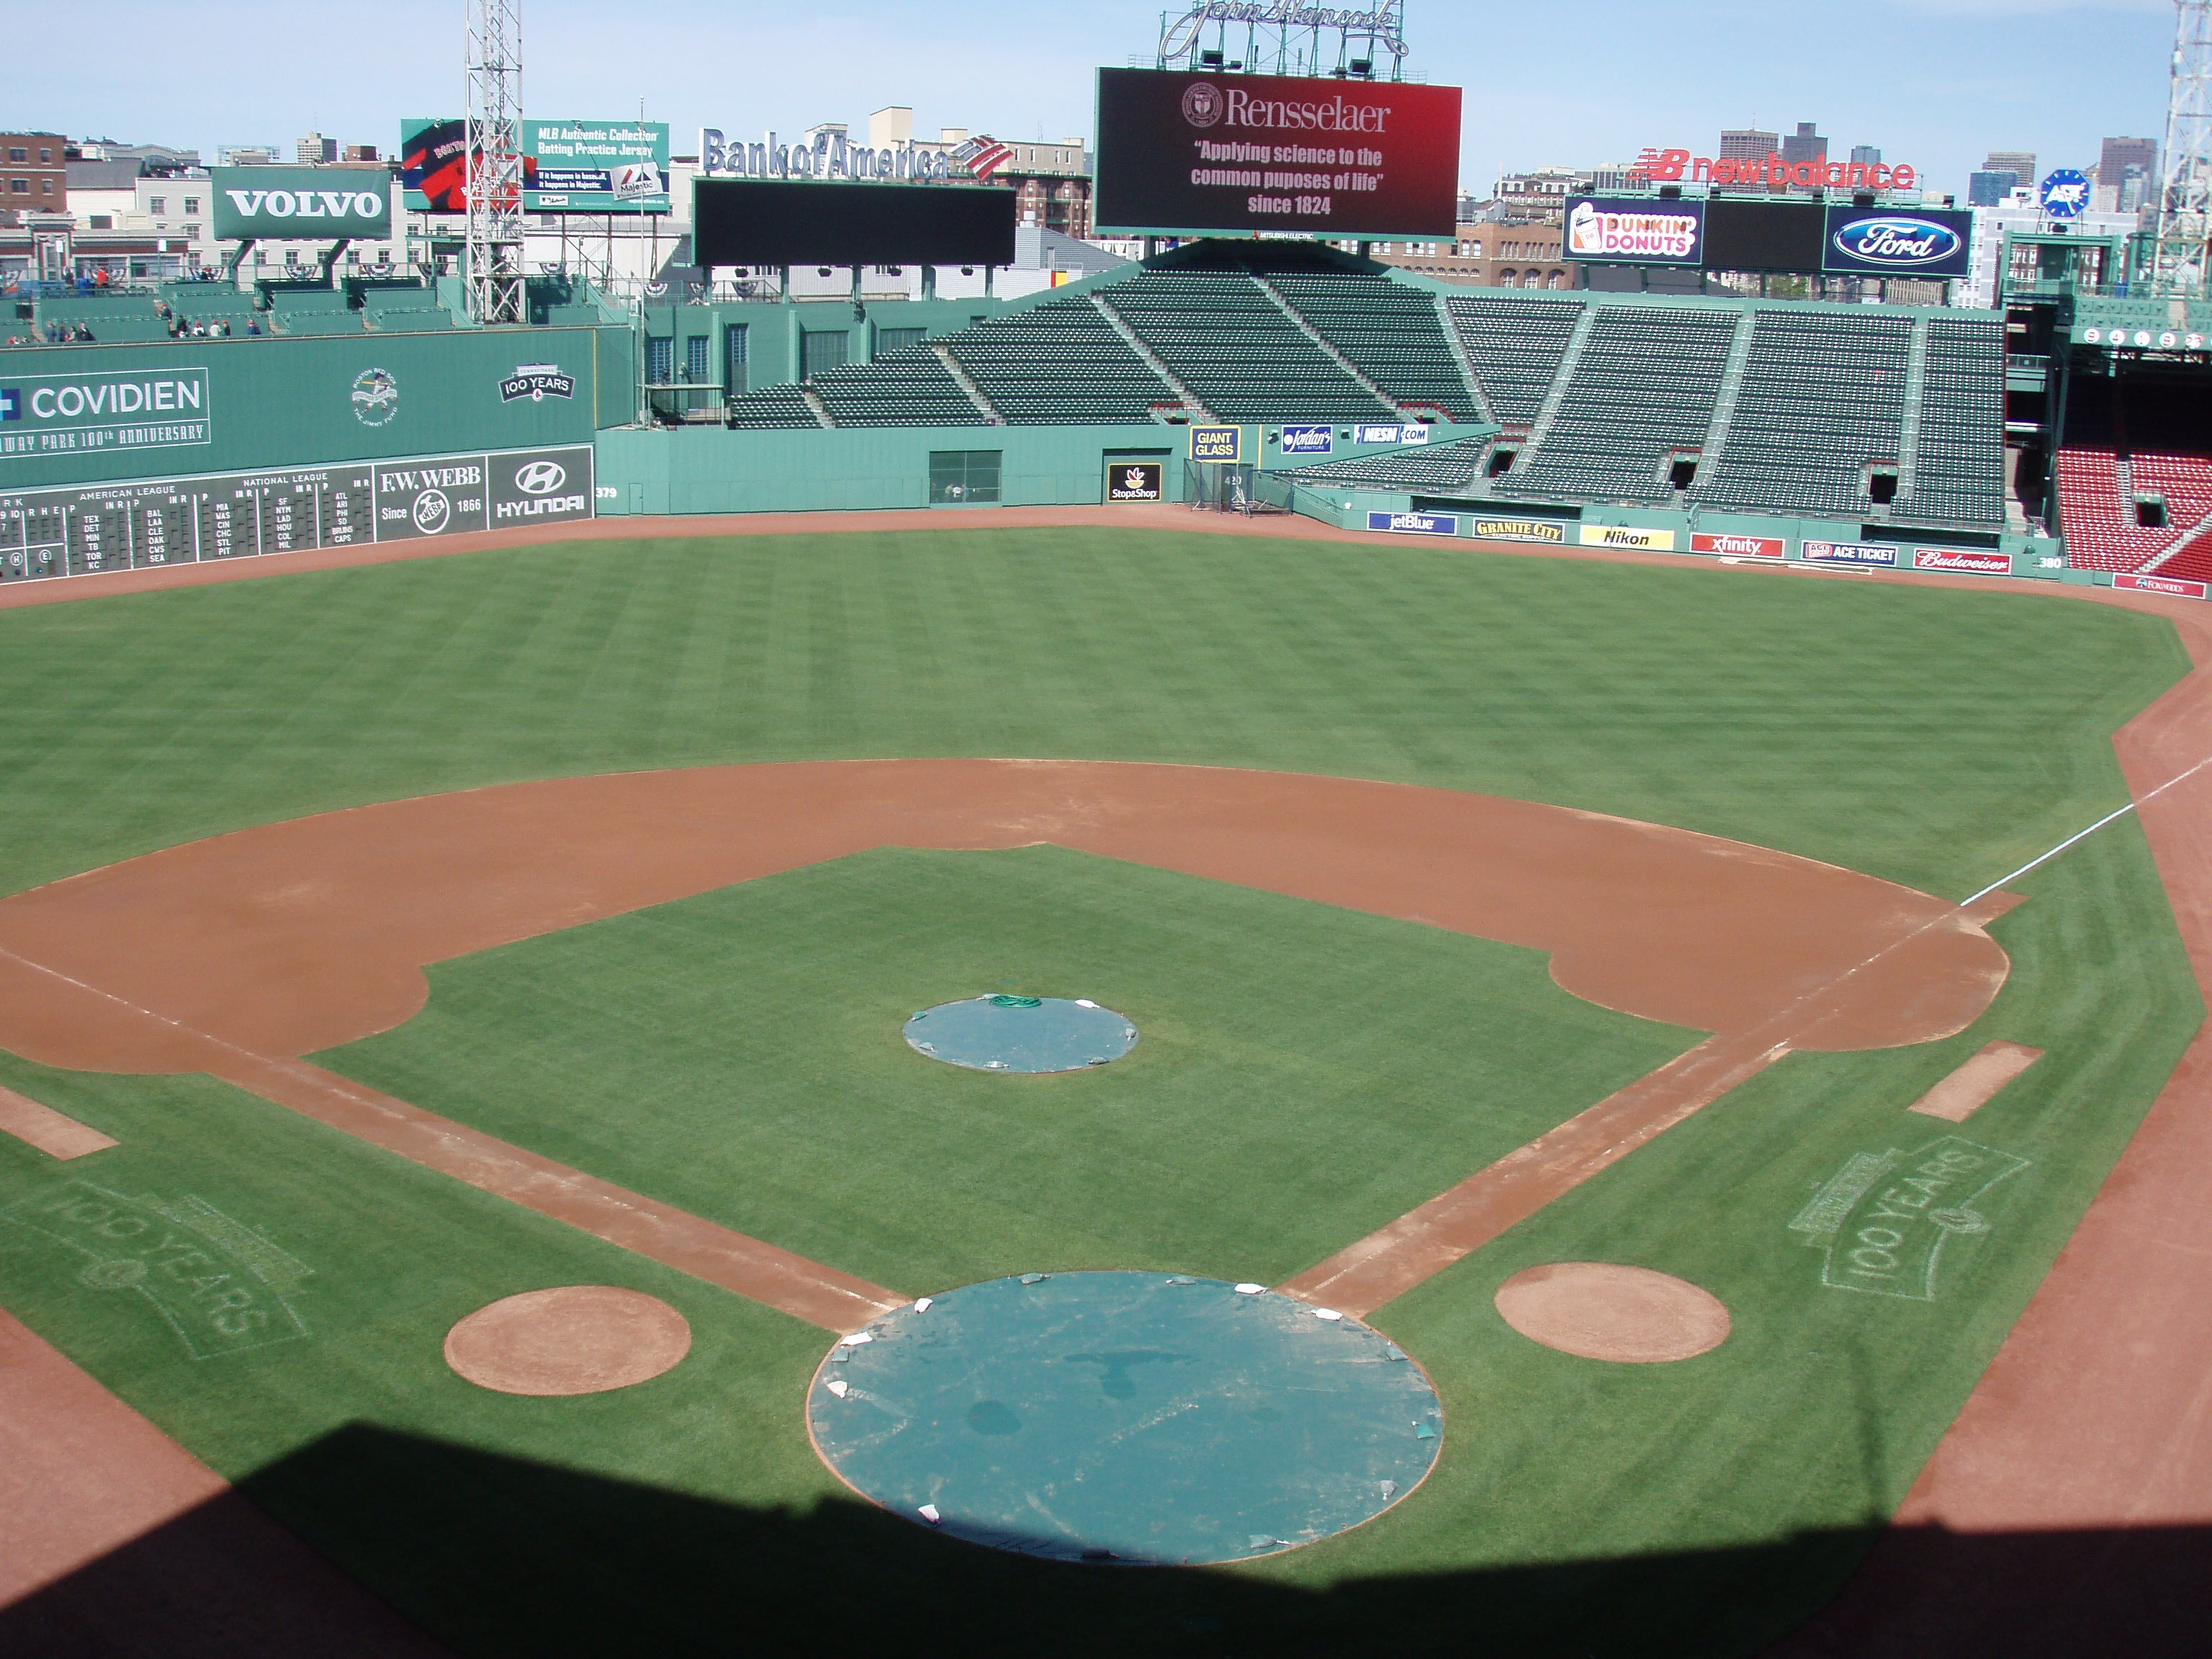 Ted Williams Angling collection at Fenway Park